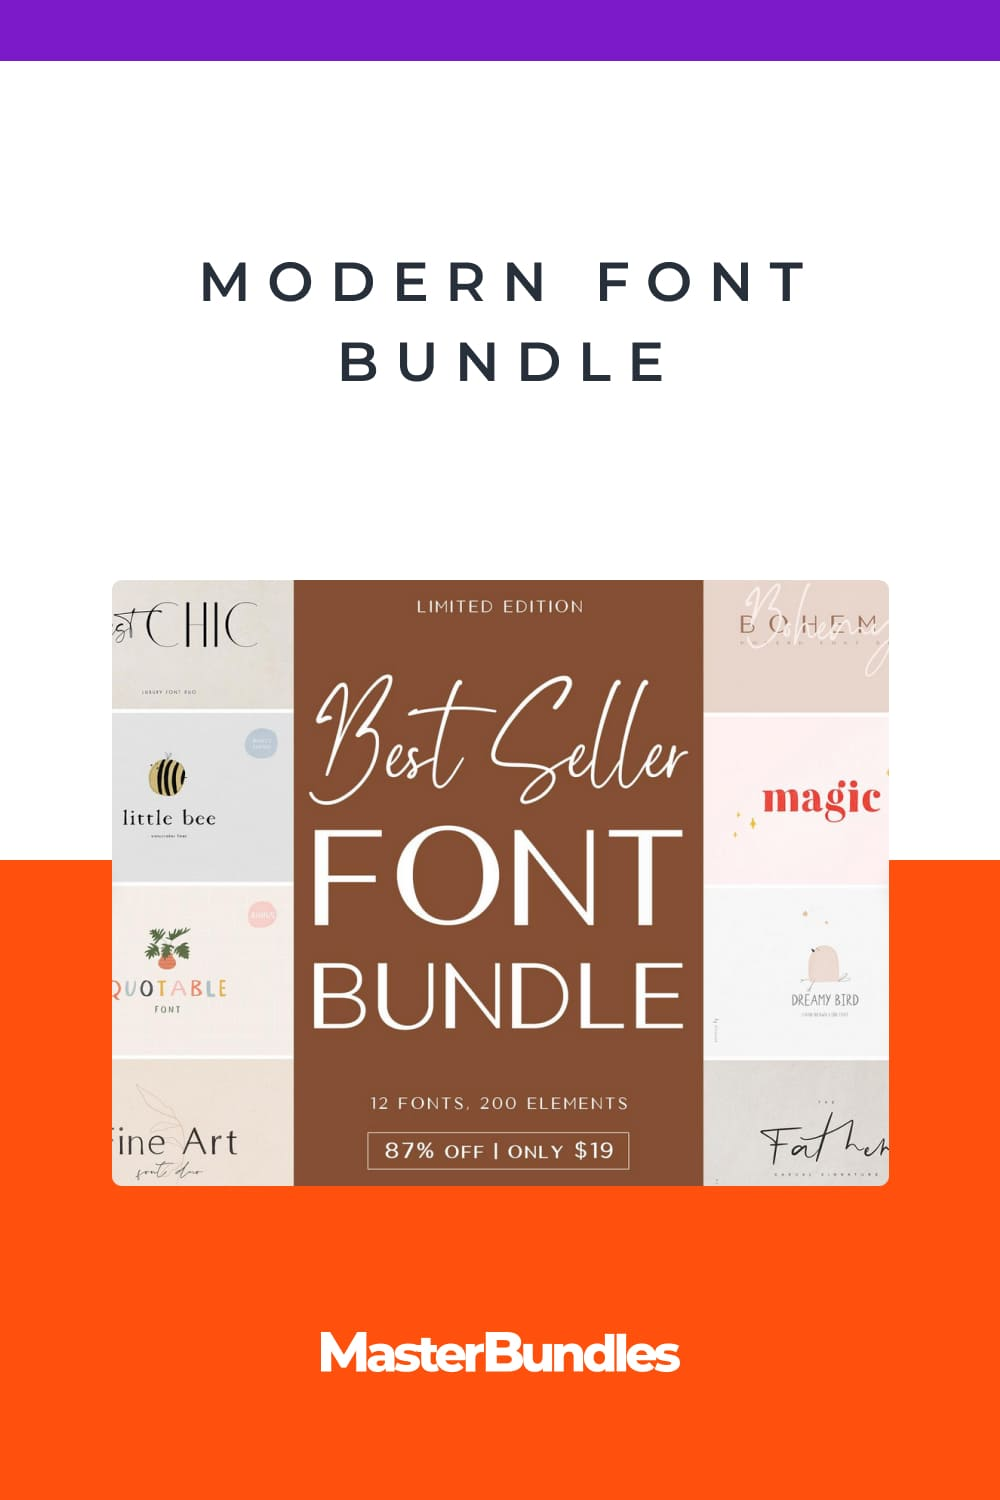 The beautiful fonts in this bundle are perfect.